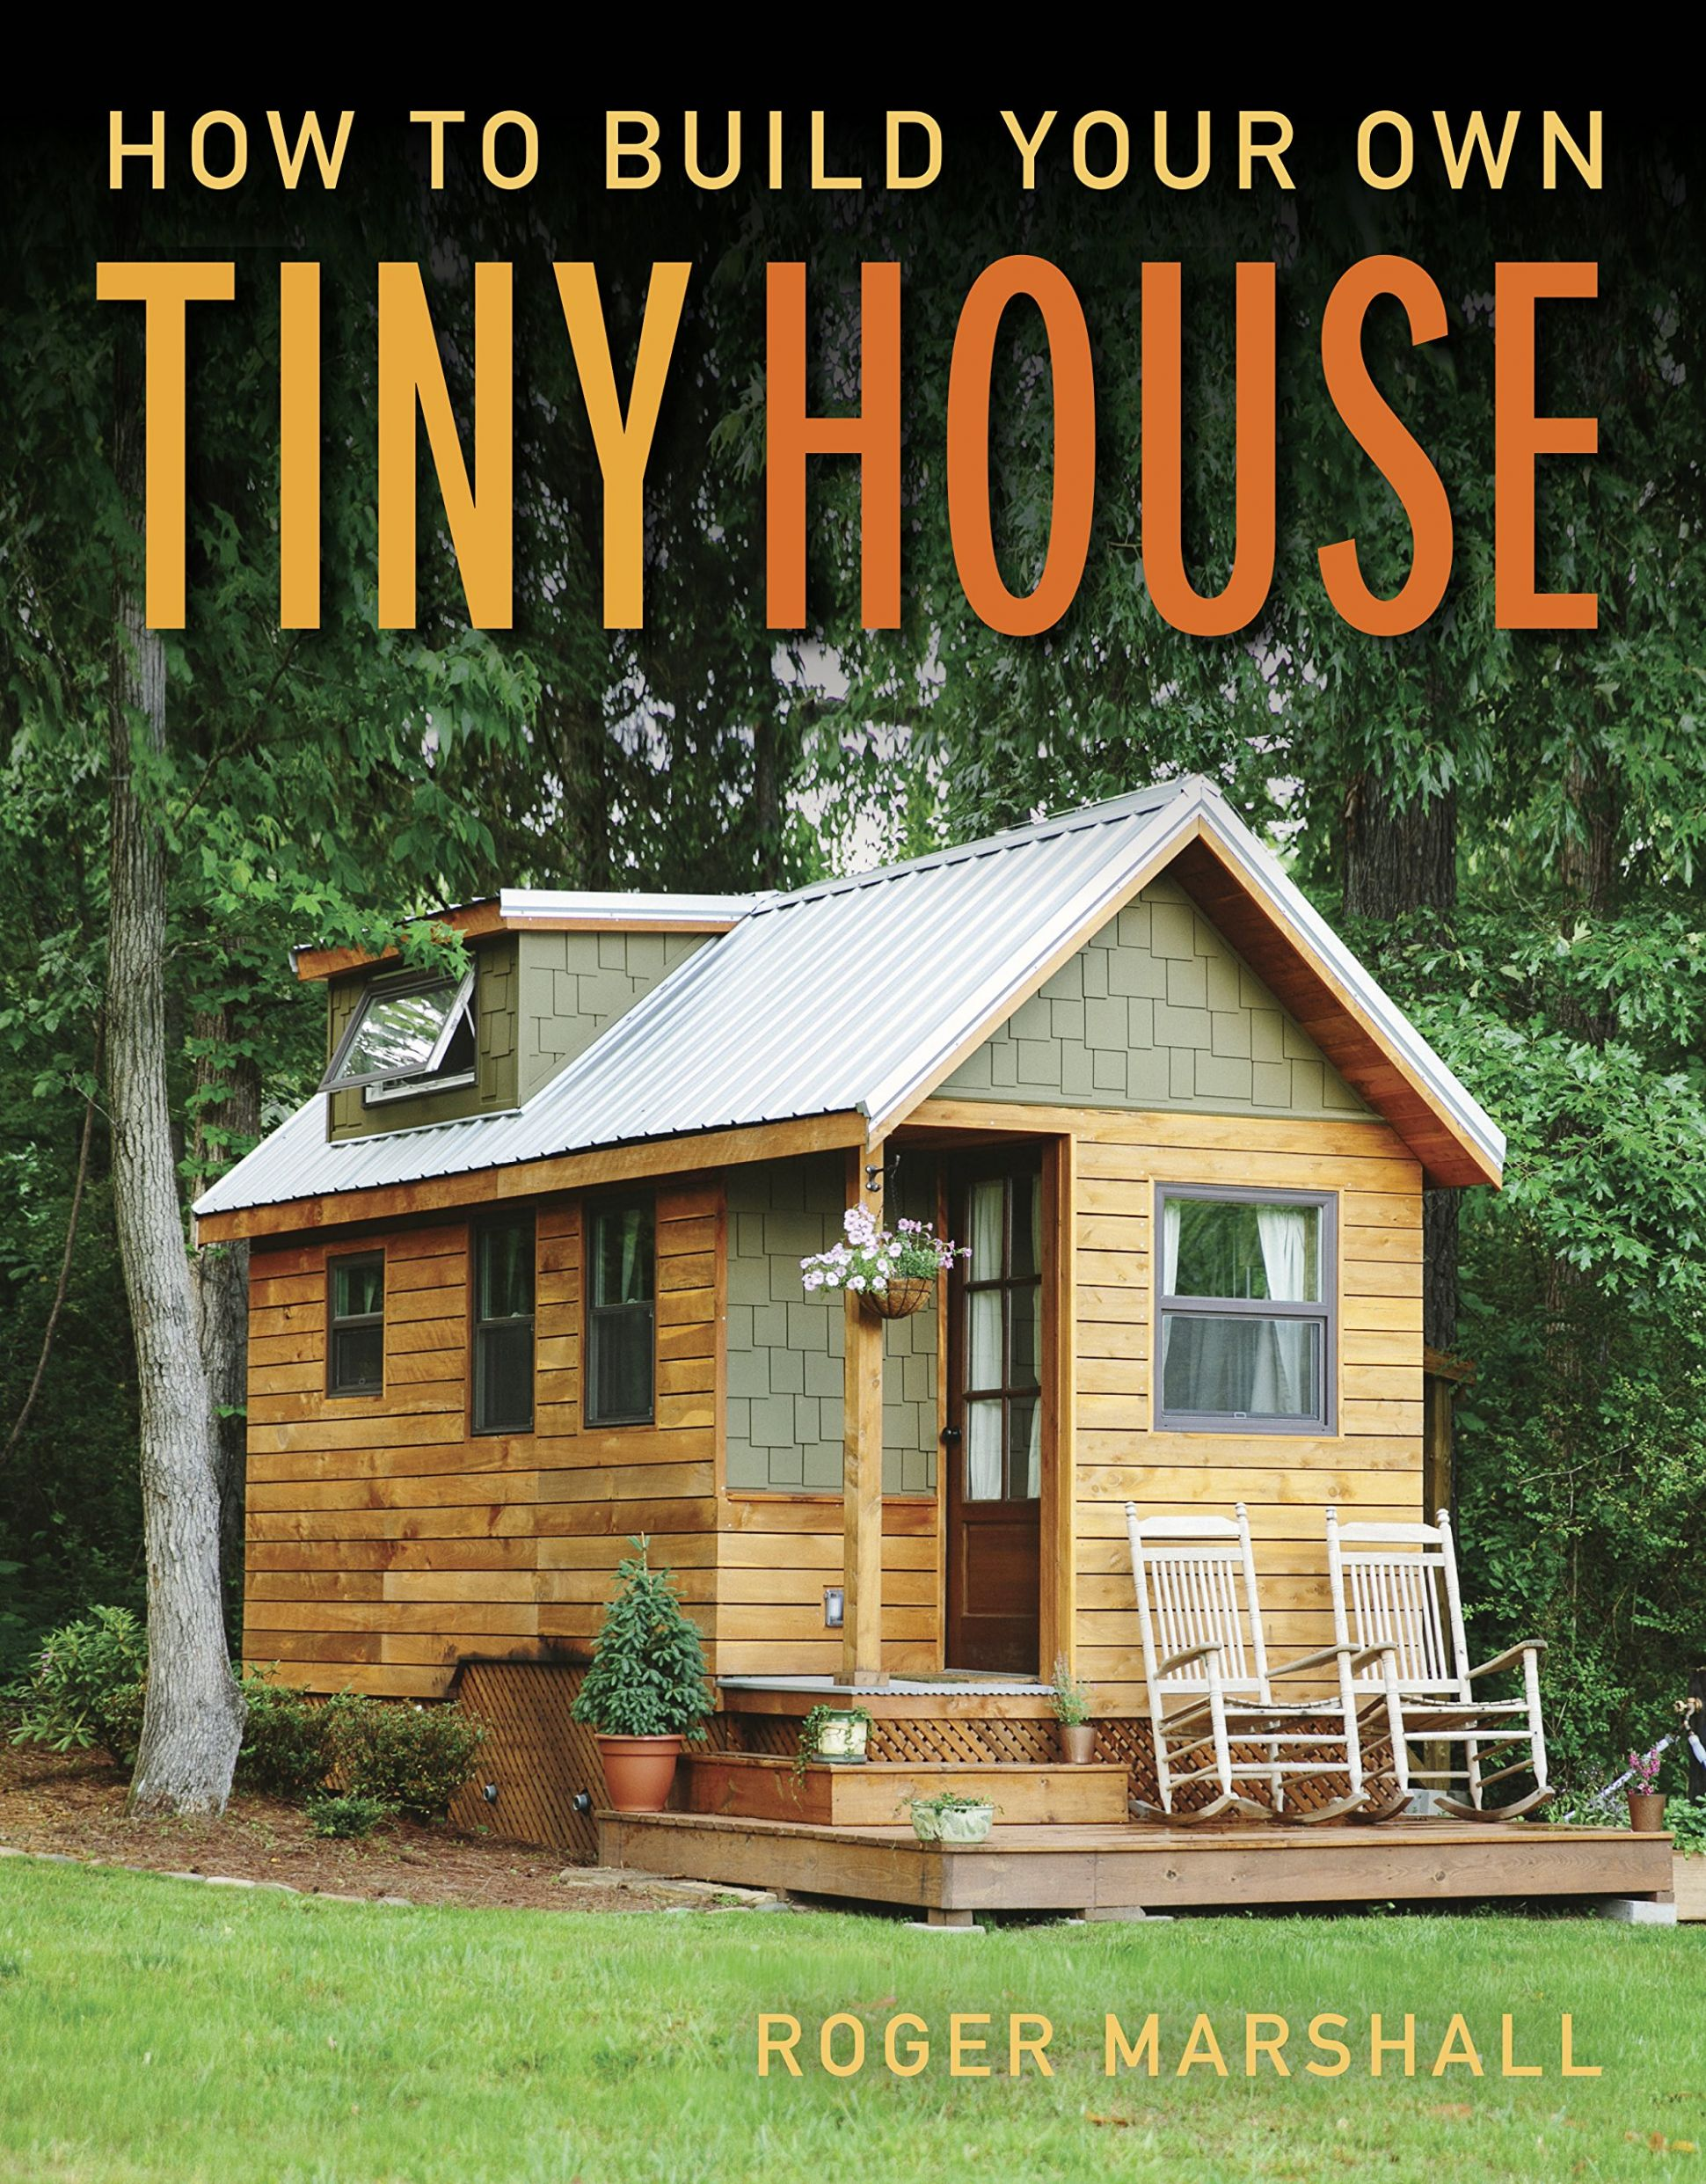 How to Build Your Own Tiny House: Amazon.de: Roger Marshall ...